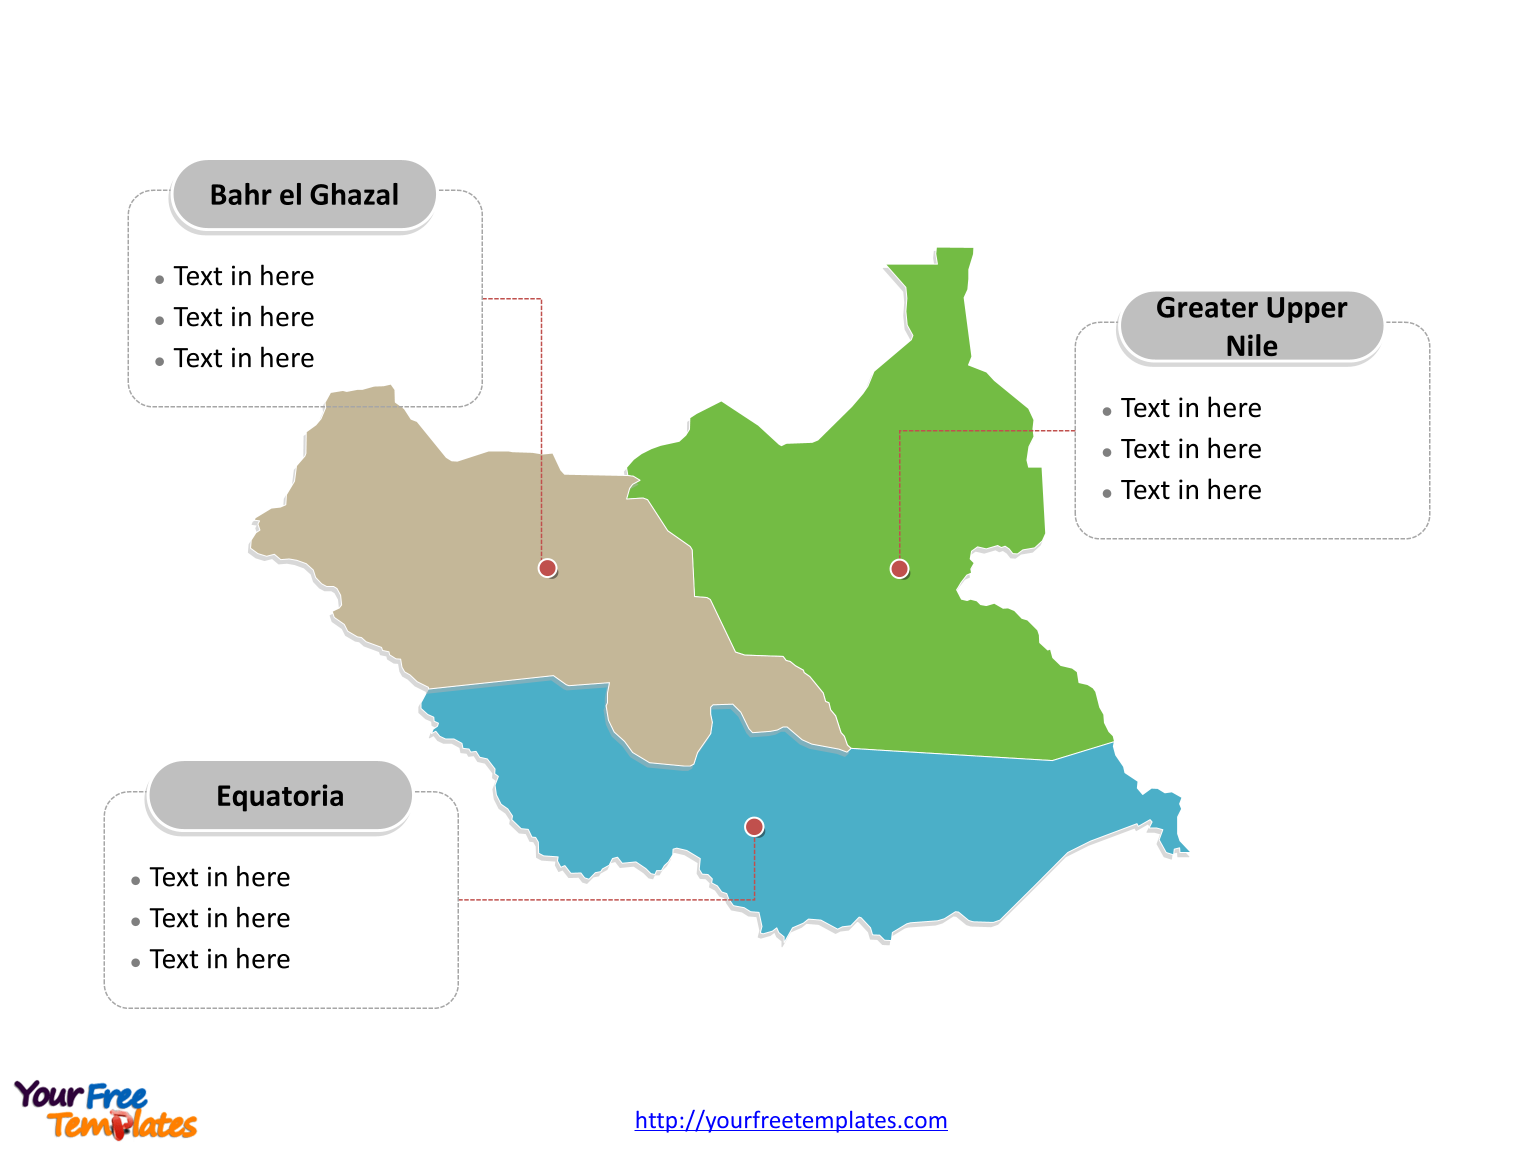 South Sudan Outline map labeled with Provinces